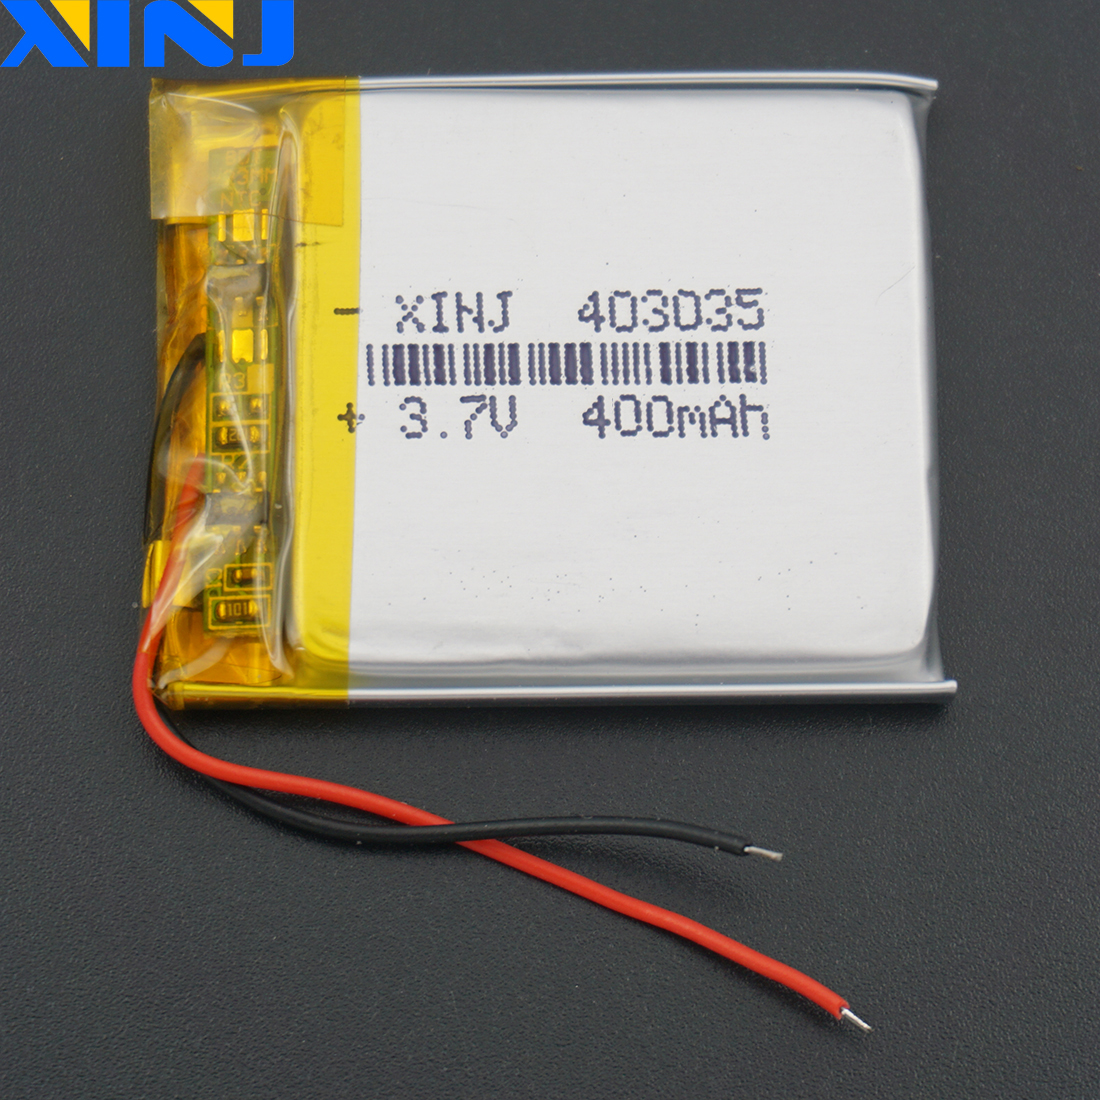 XINJ <font><b>3.7V</b></font> 400mAh li polymer battery li ion cell <font><b>403035</b></font> For GPS E-book smart watch driving recorder Sat Nav Camera bluetooth MP4 image